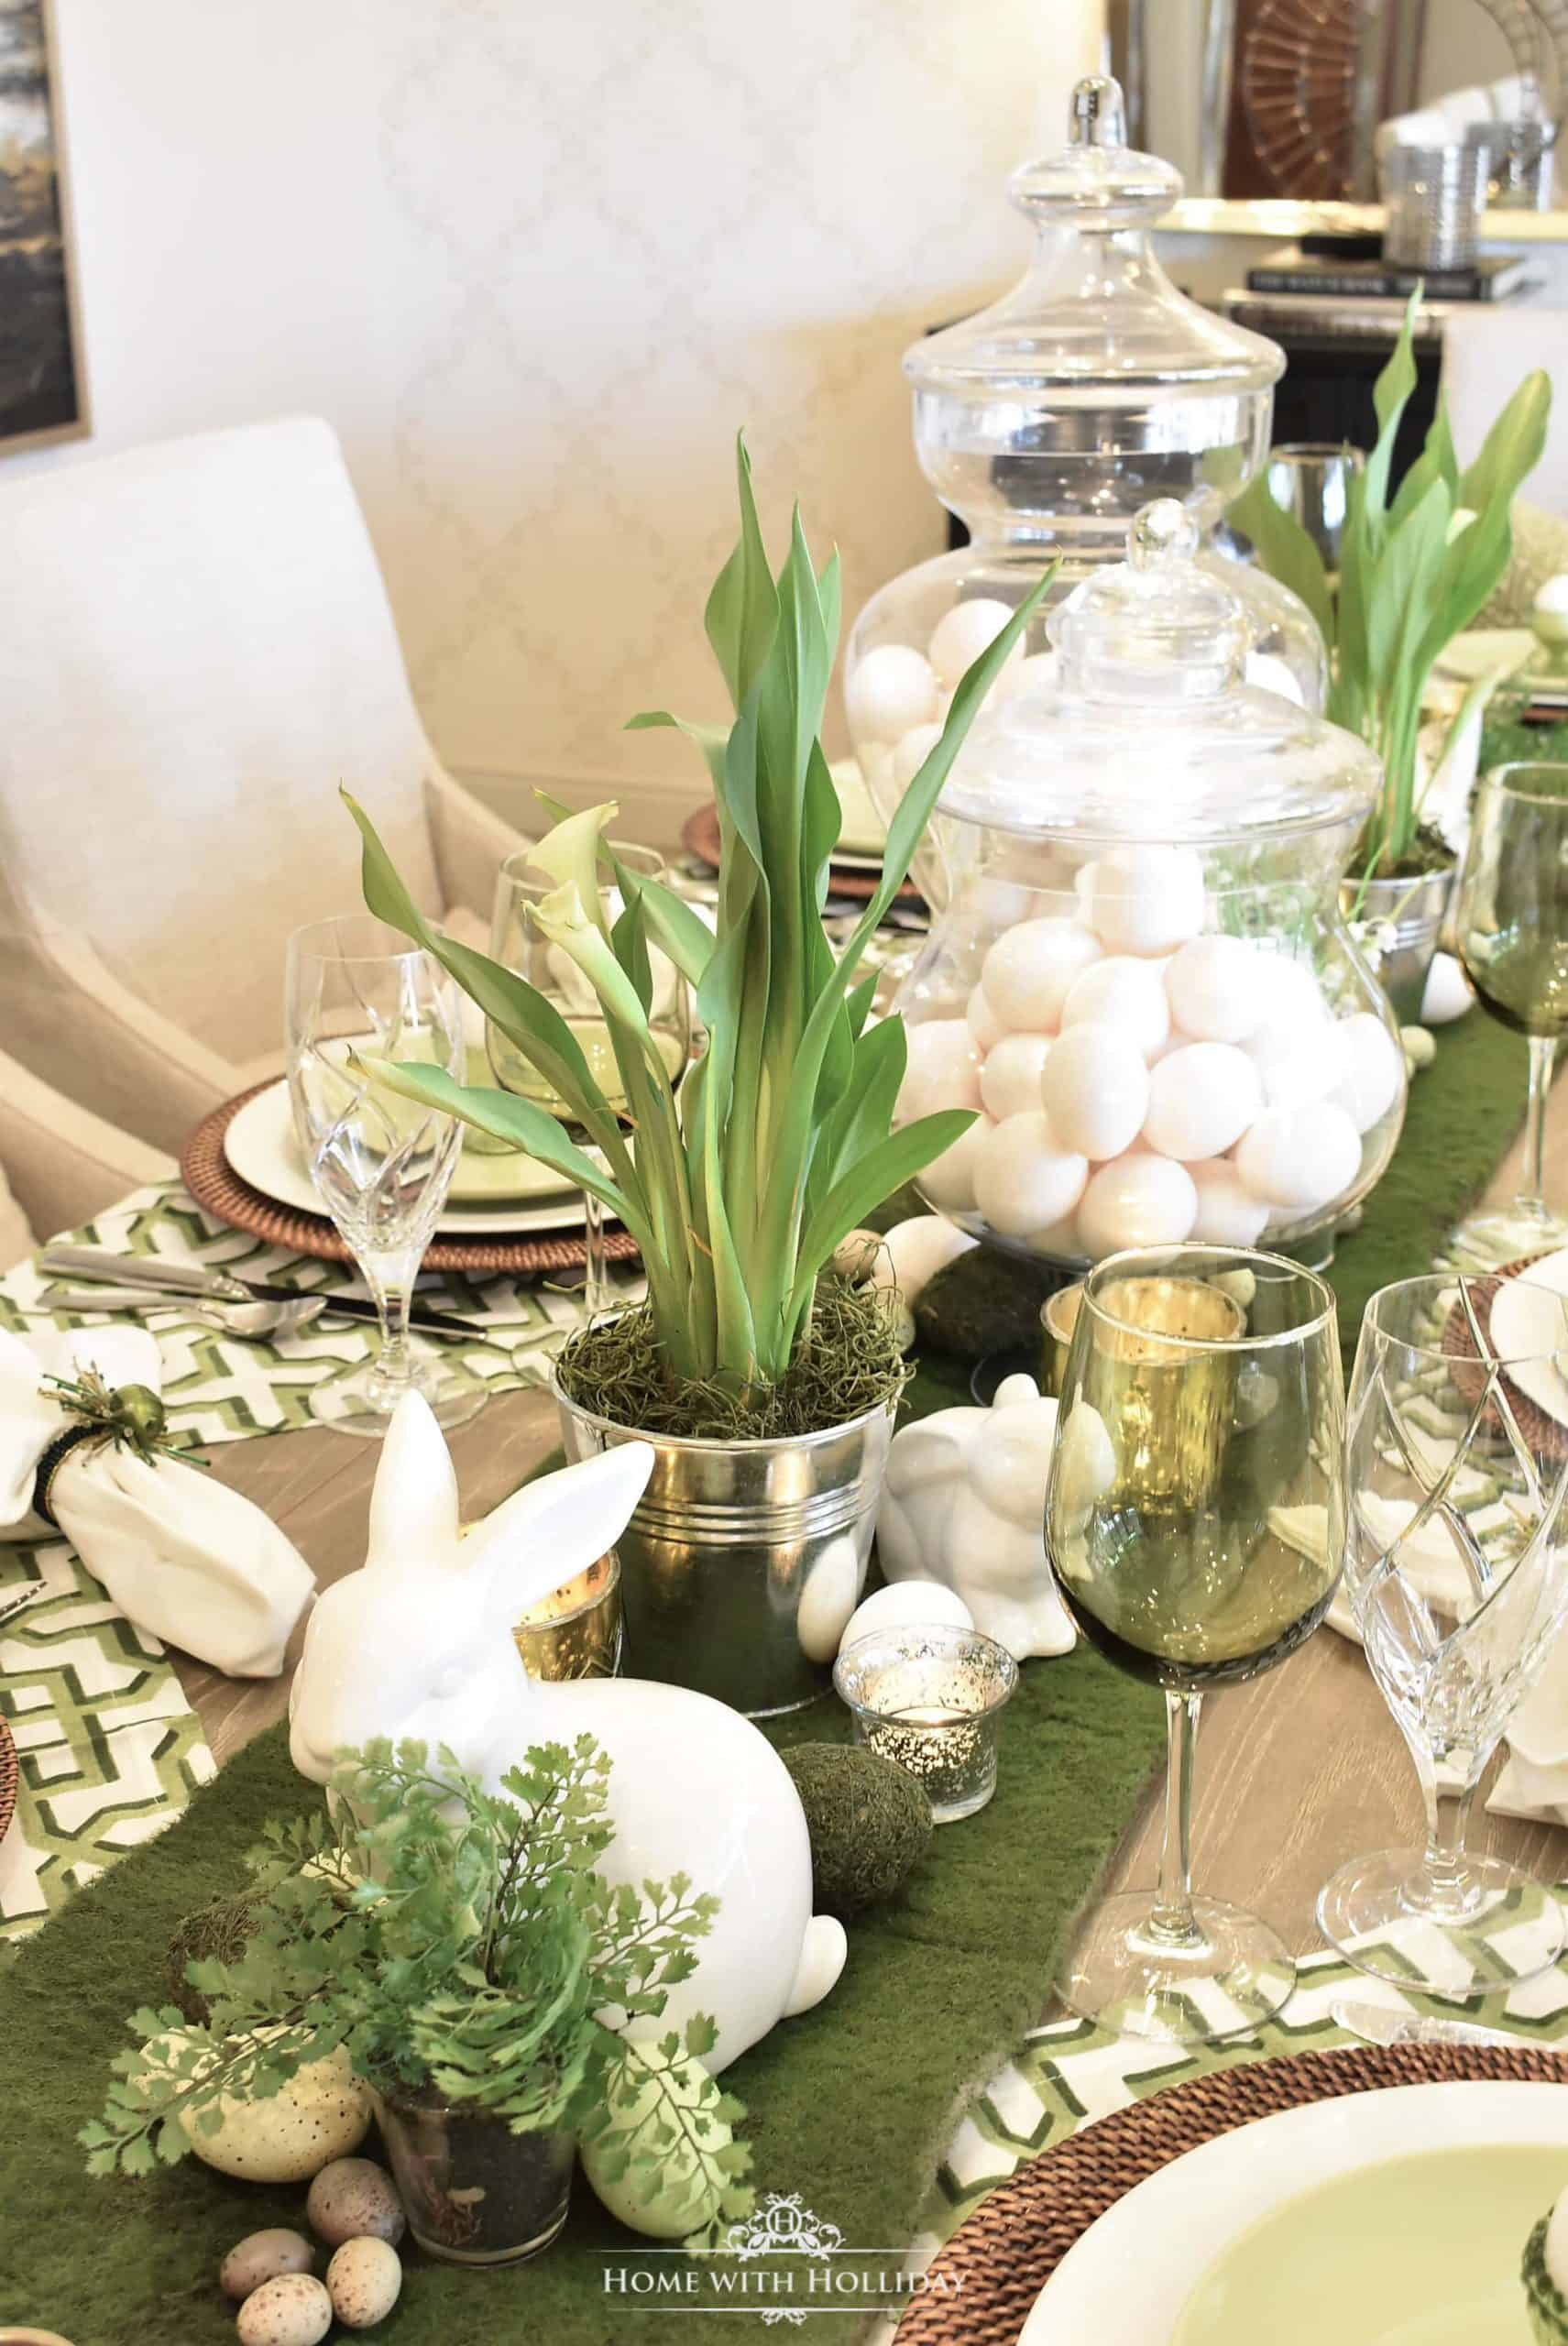 Elegant table setting with eggshell and green color scheme, green table runner, glass containers filled with eggs, and metal buckets with grass-like plants.